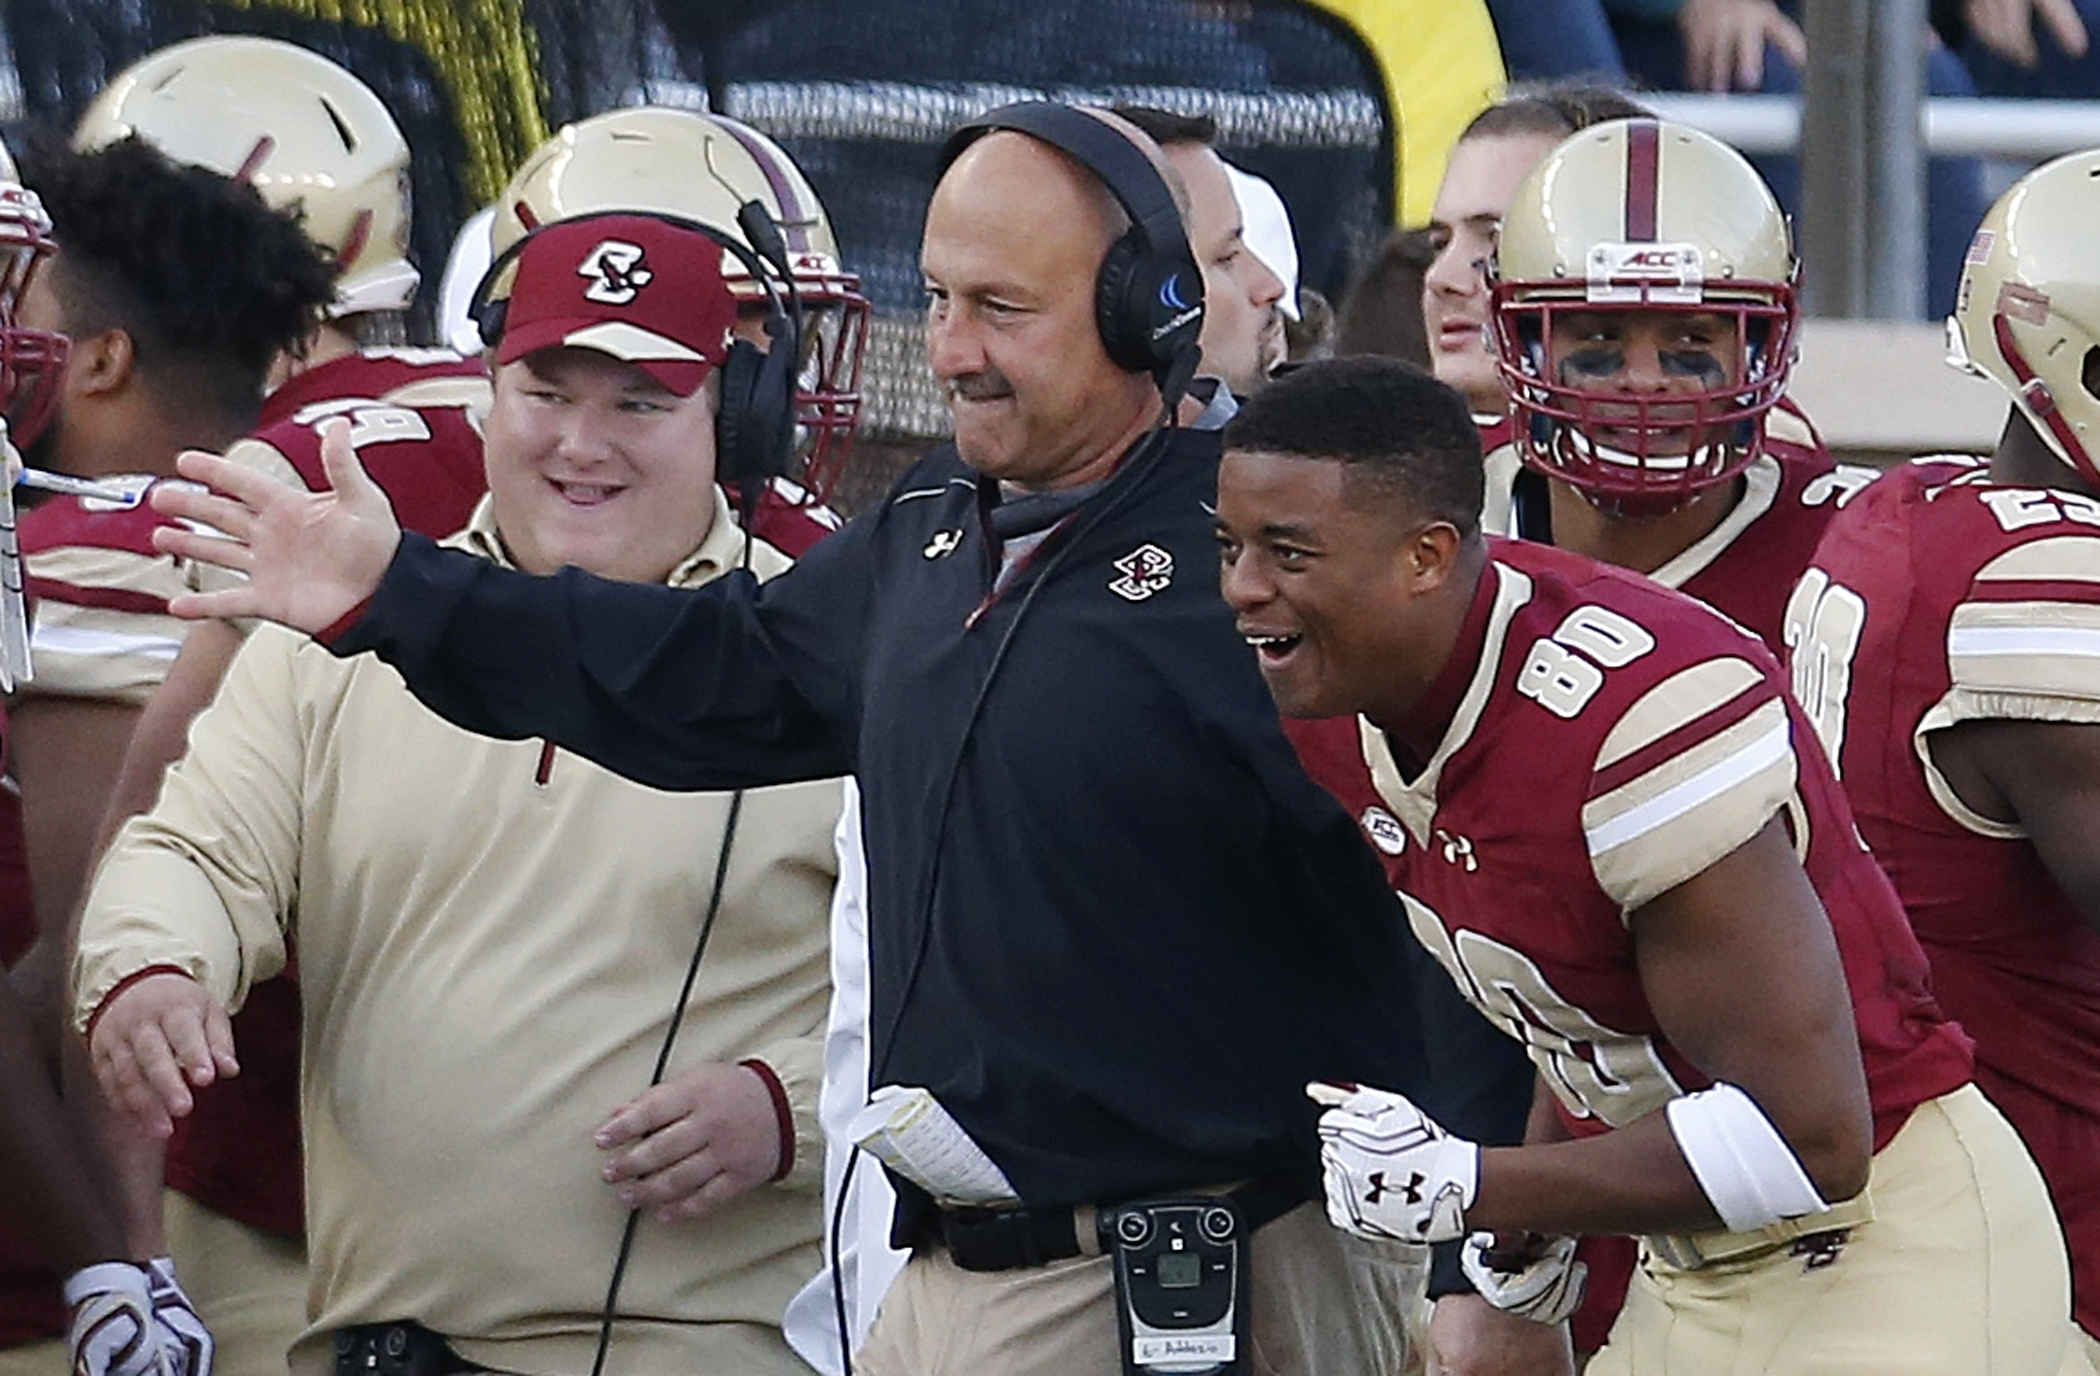 Boston College head coach Steve Addazio, center, celebrates with wide receiver Drew Barksdale (80) after a touchdown interception during the second half of an NCAA college football game against Connecticut in Boston, Saturday, Nov. 19, 2016. Boston Colleg